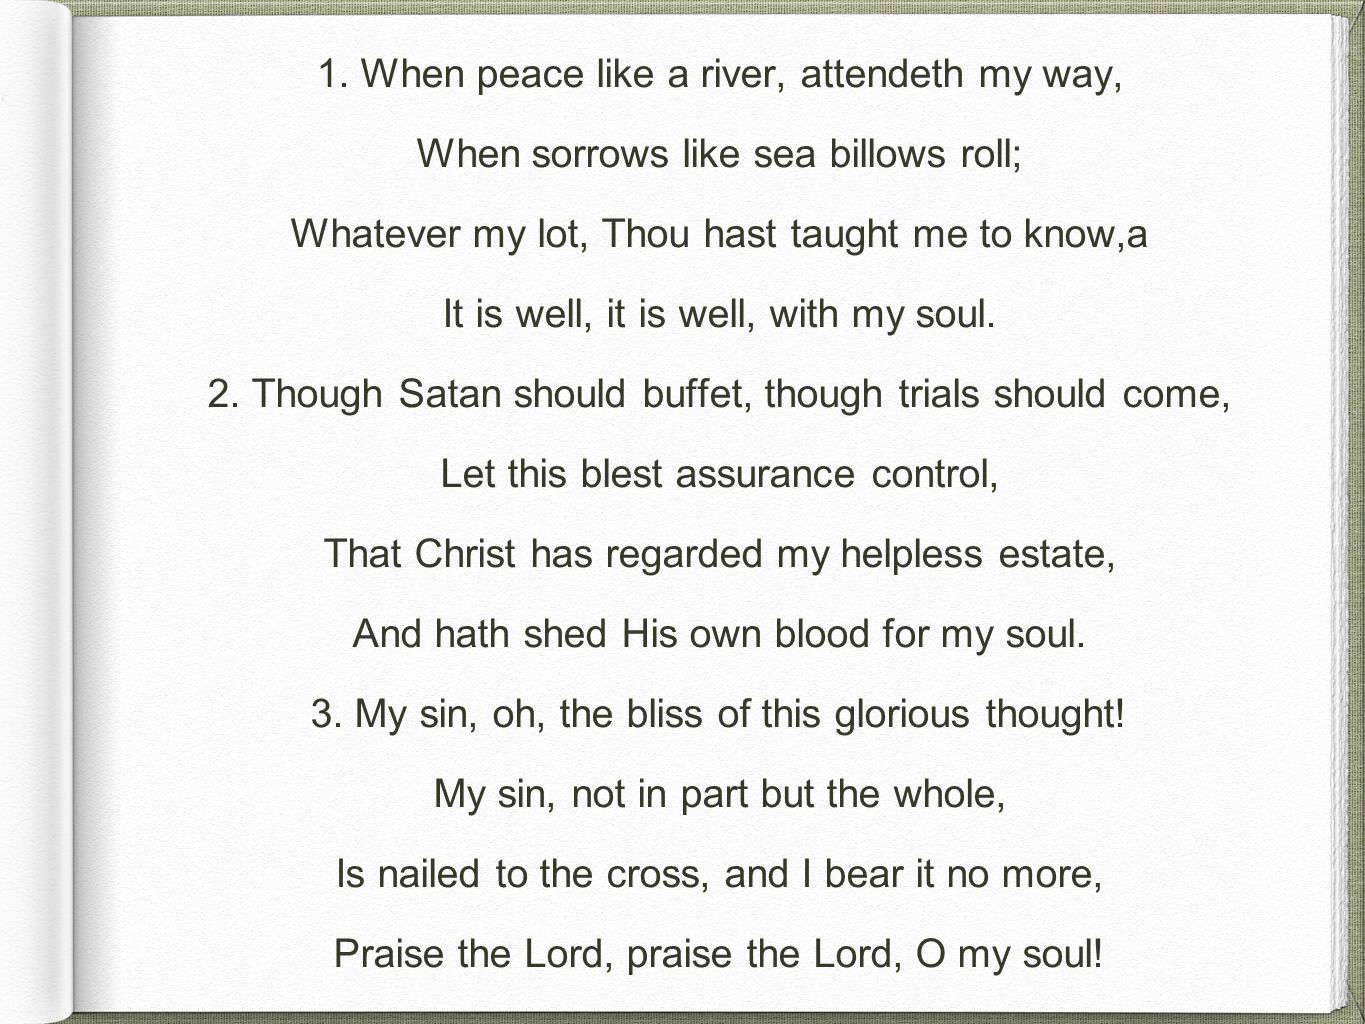 1. When peace like a river, attendeth my way, When sorrows like sea billows roll; Whatever my lot, Thou hast taught me to know,a It is well, it is wel